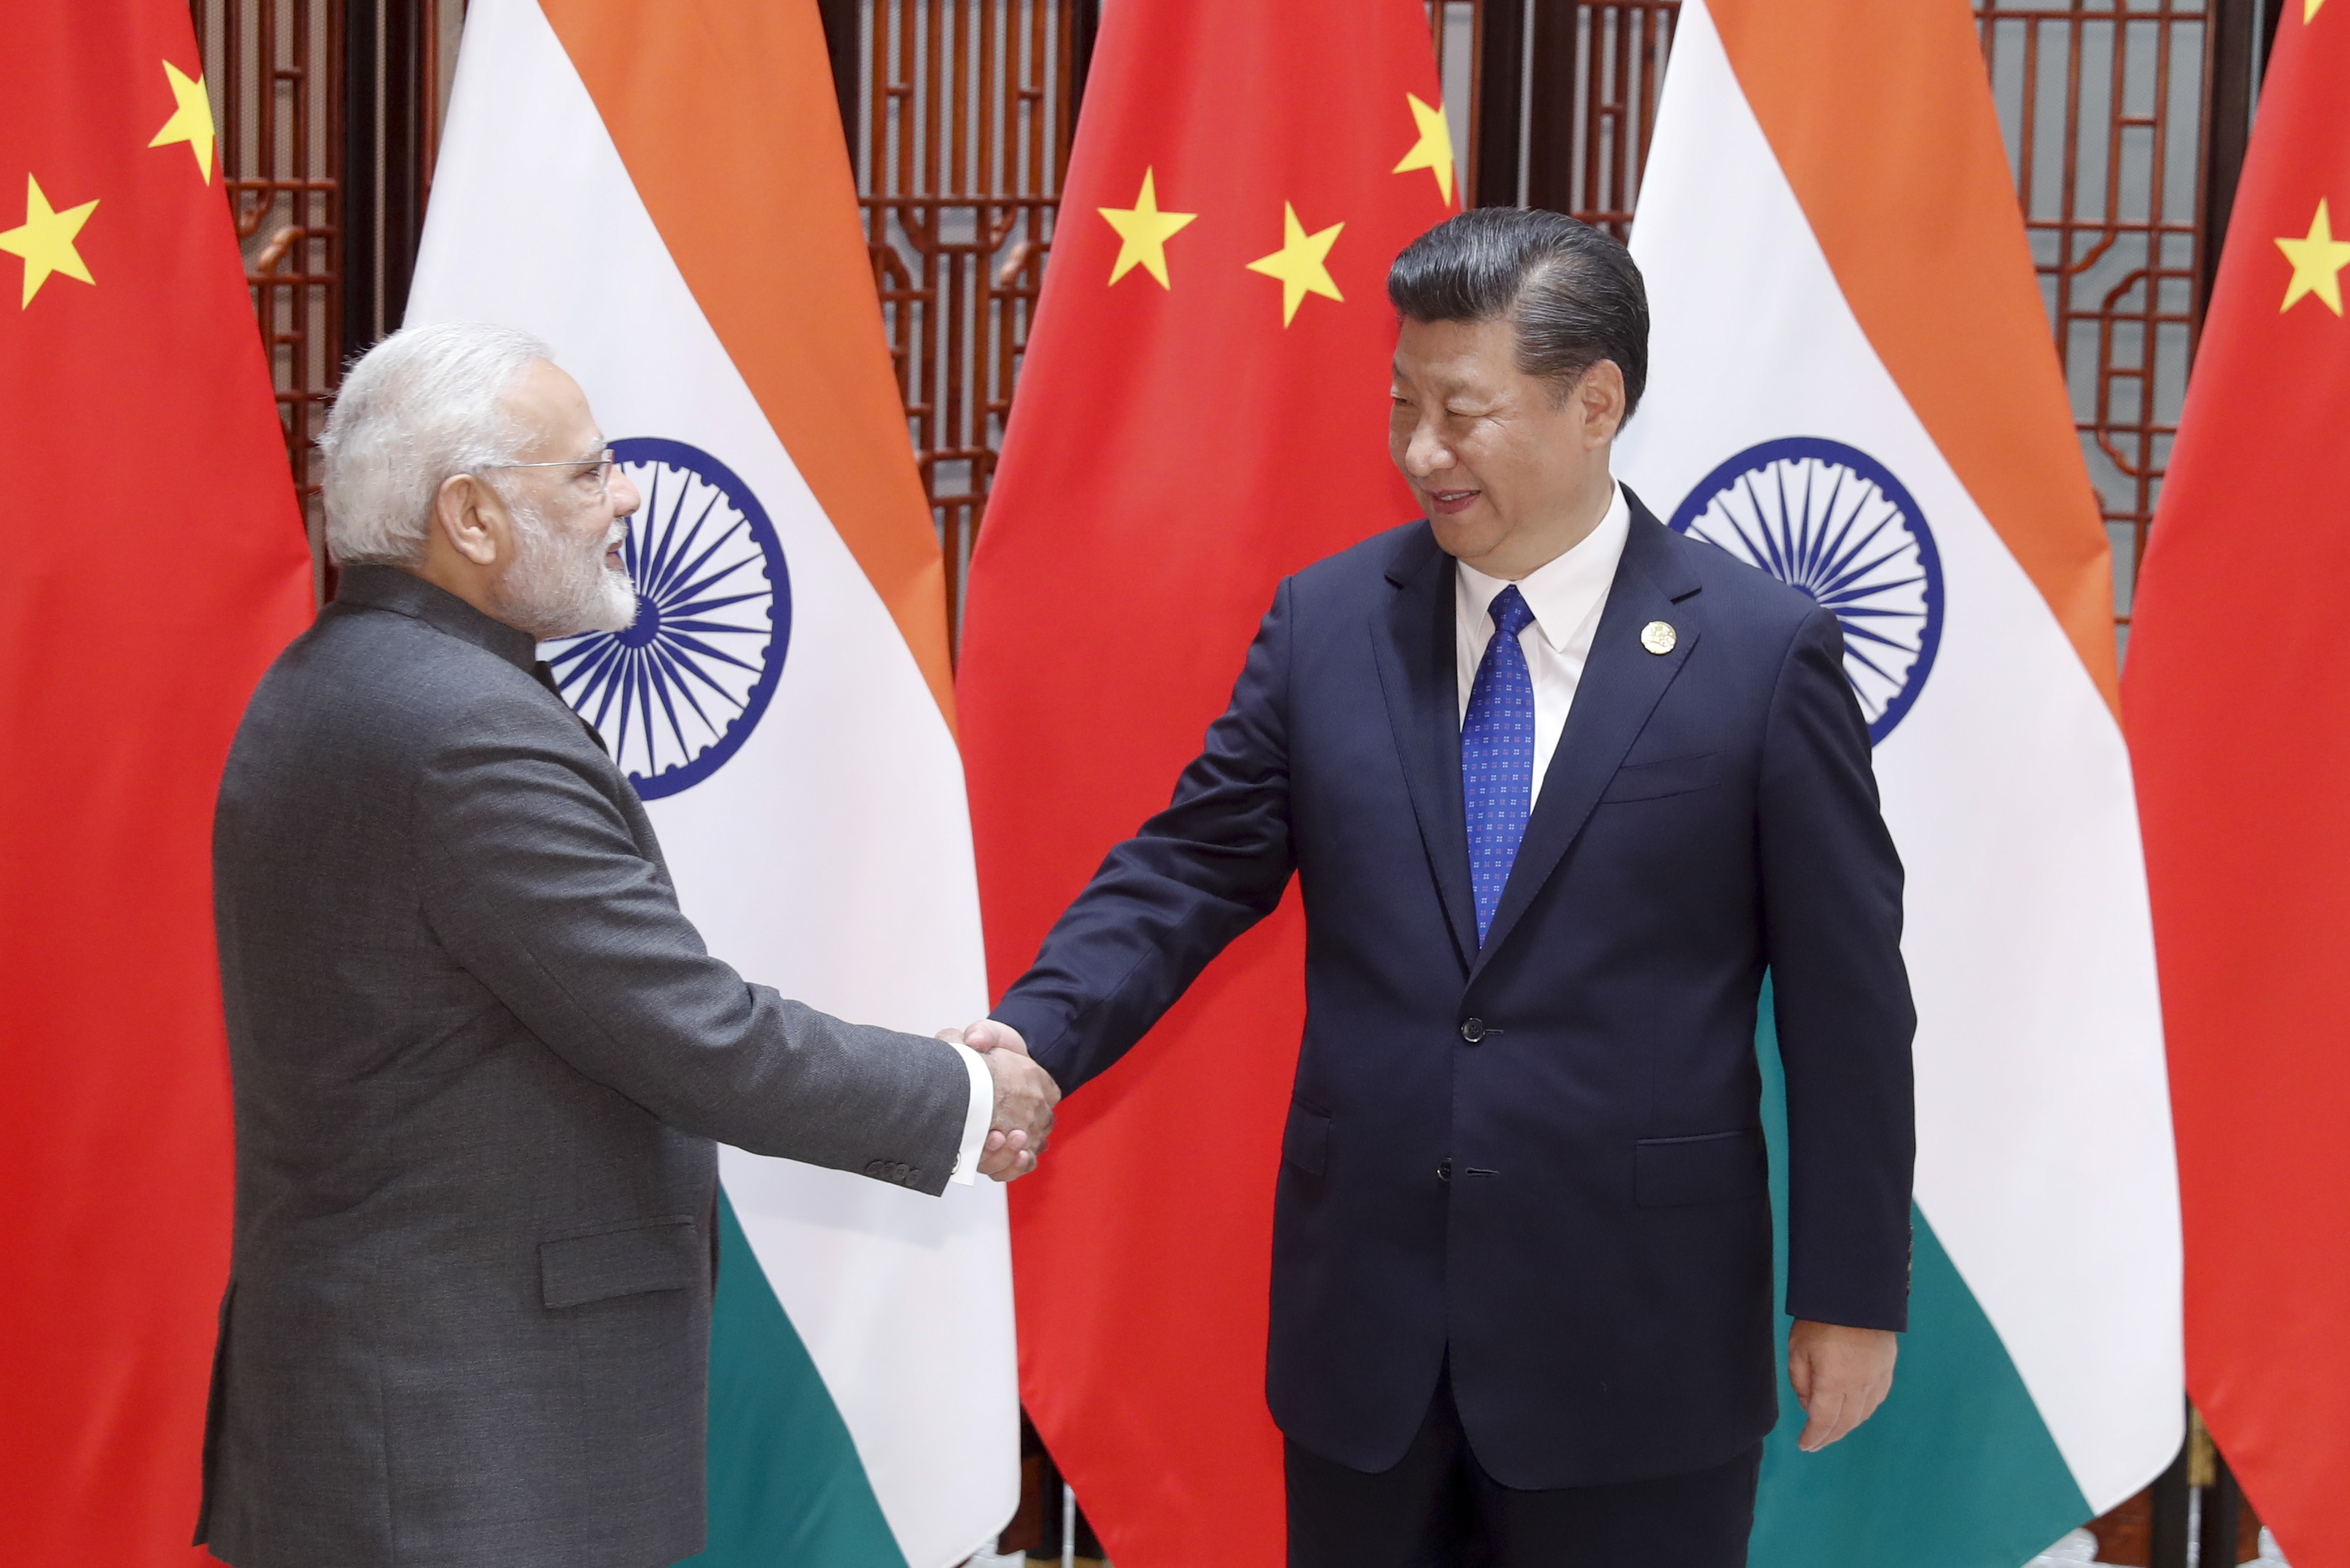 Chinese President Xi Jinping meets with Indian Prime Minister Narendra Modi on September 5, 2017 in Xiamen, Fujian Province of China.